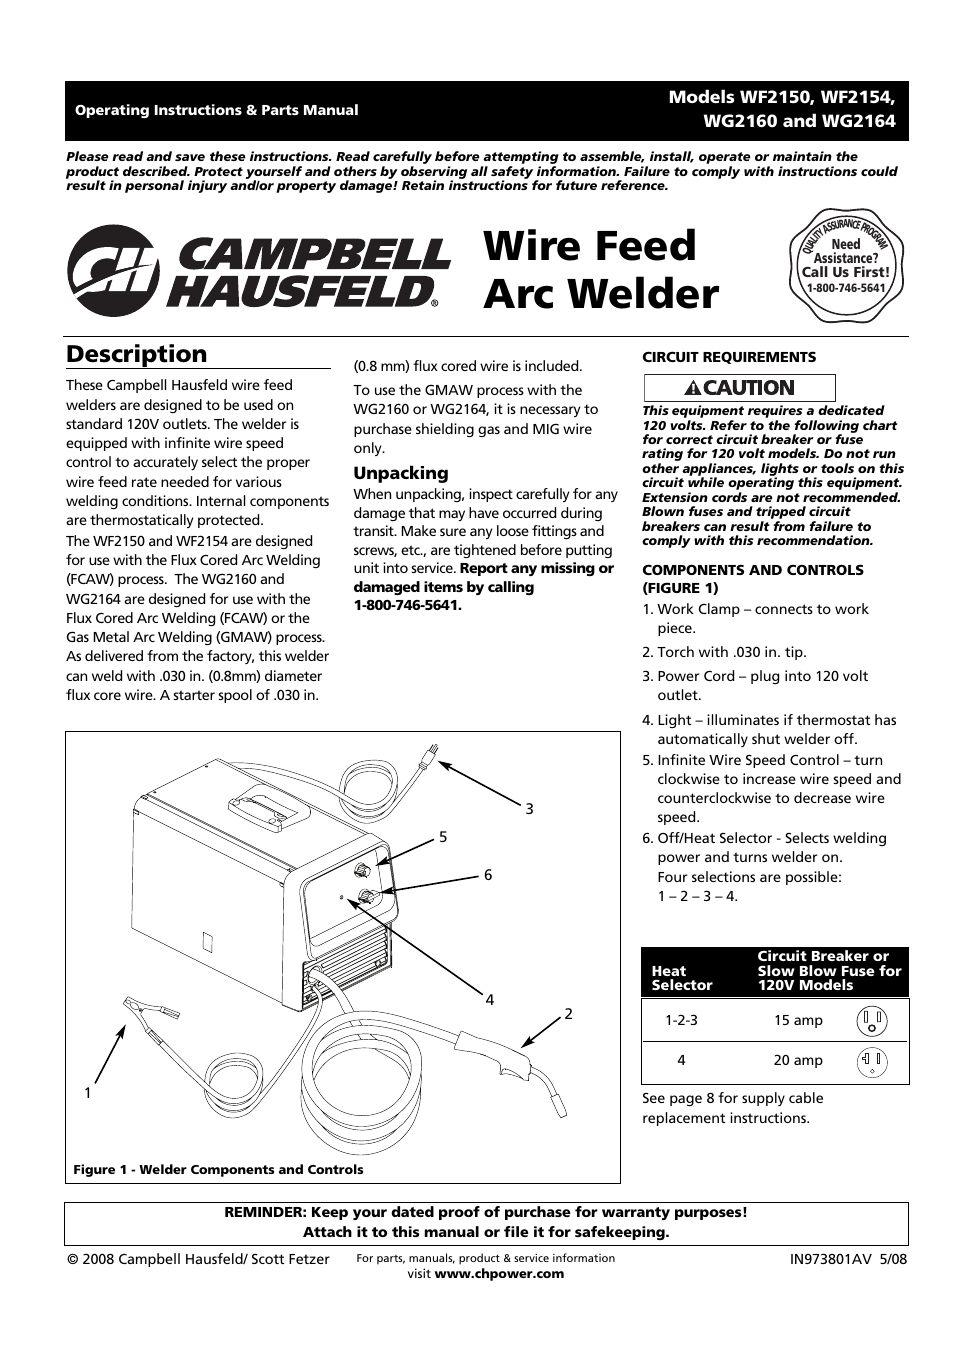 Old Fashioned Campbell Hausfeld Wire Feed Welder Photo - Wiring ...